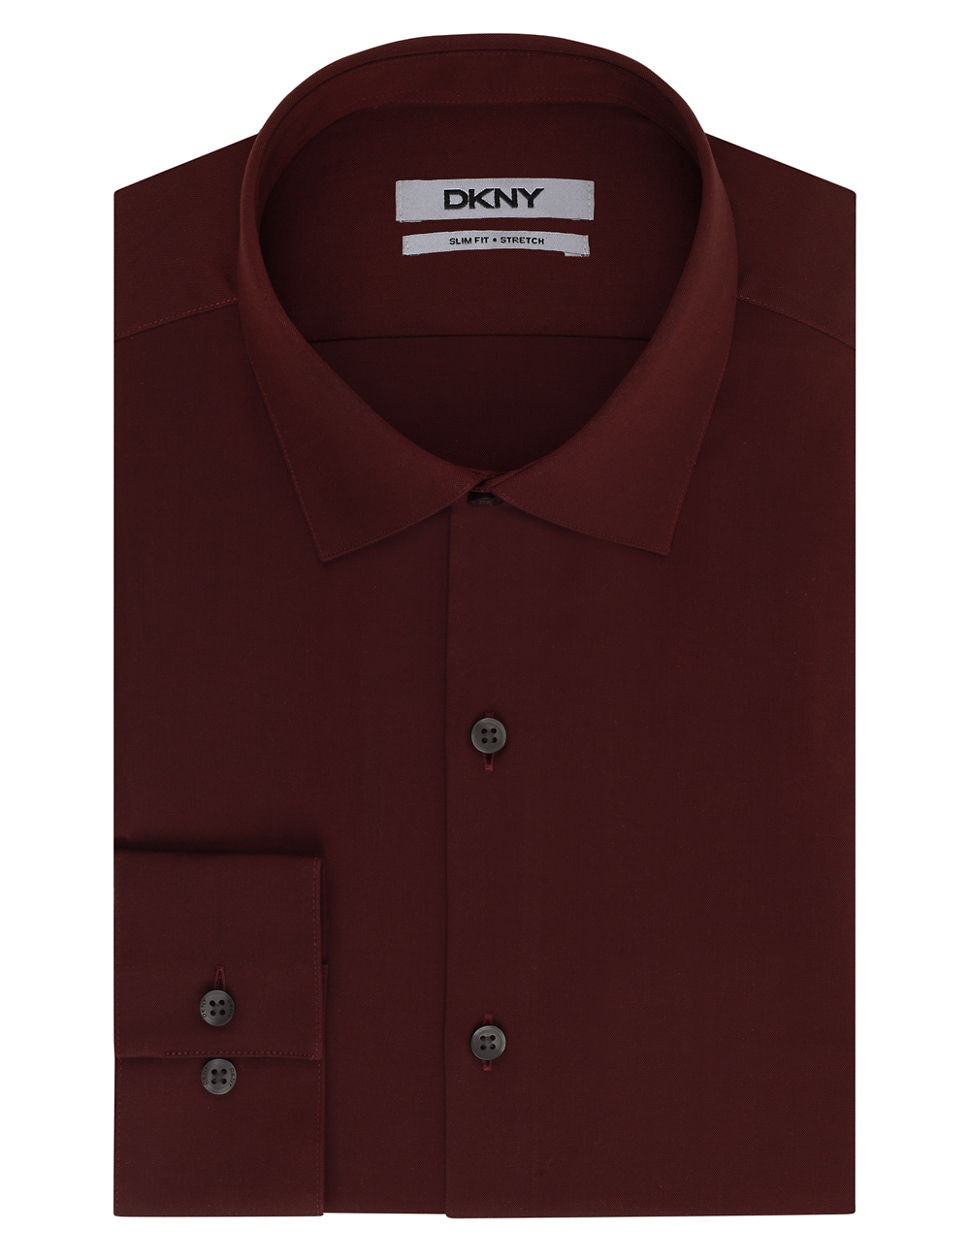 Dkny slim fit natural stretch dress shirt in purple for for How to stretch a dress shirt